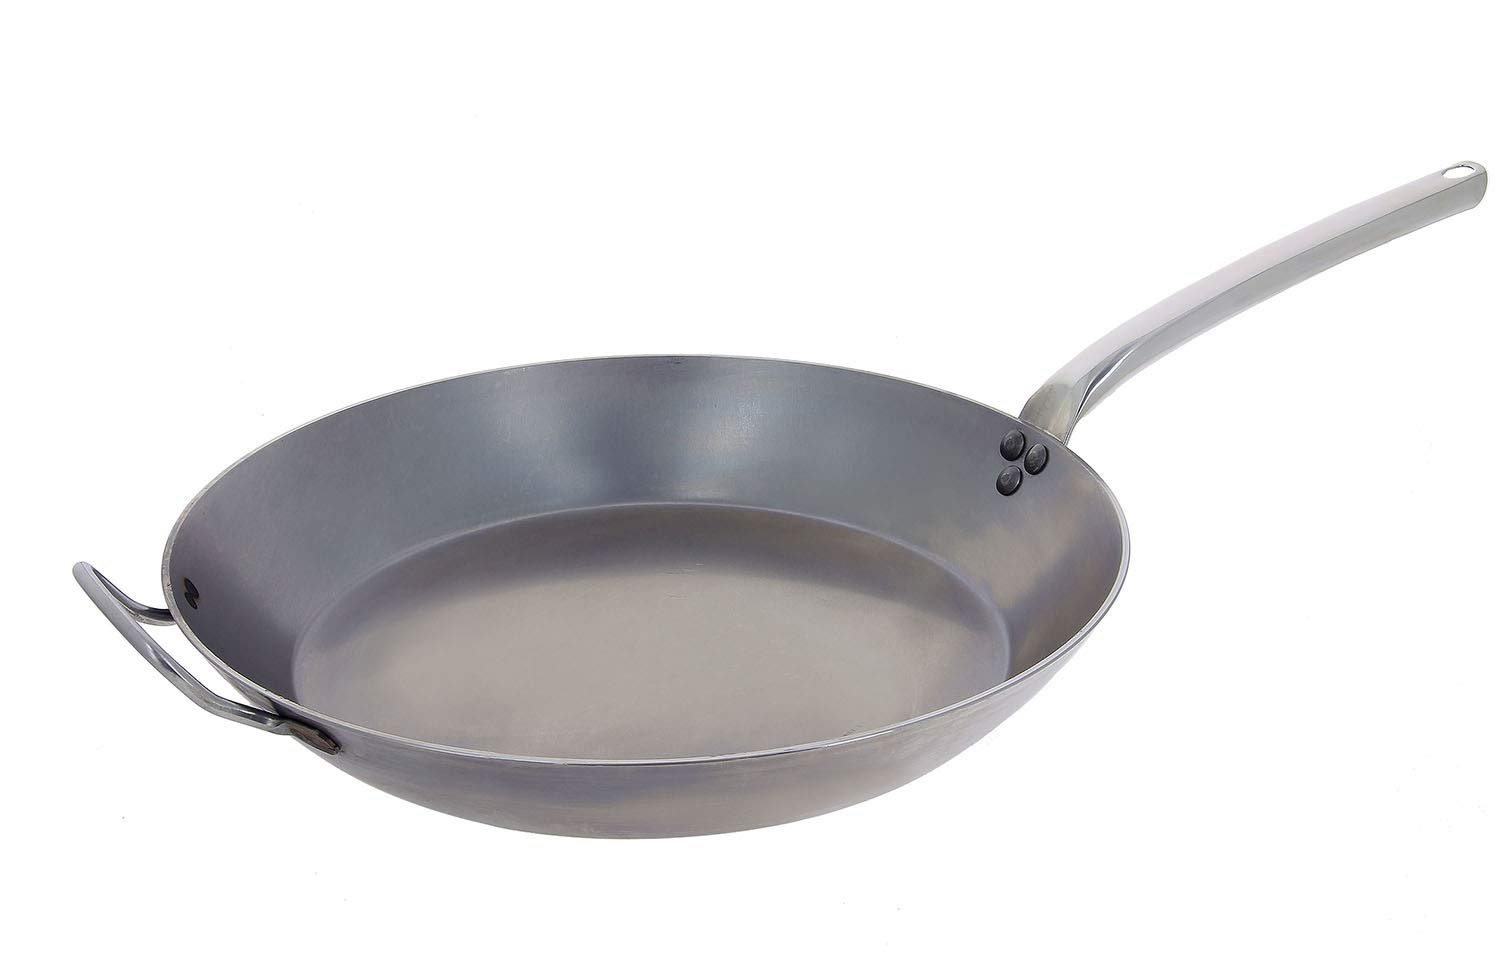 De Buyer Professional 32 cm Carbone Plus White Iron Round Frying Pan with Cold Handle 5130.32